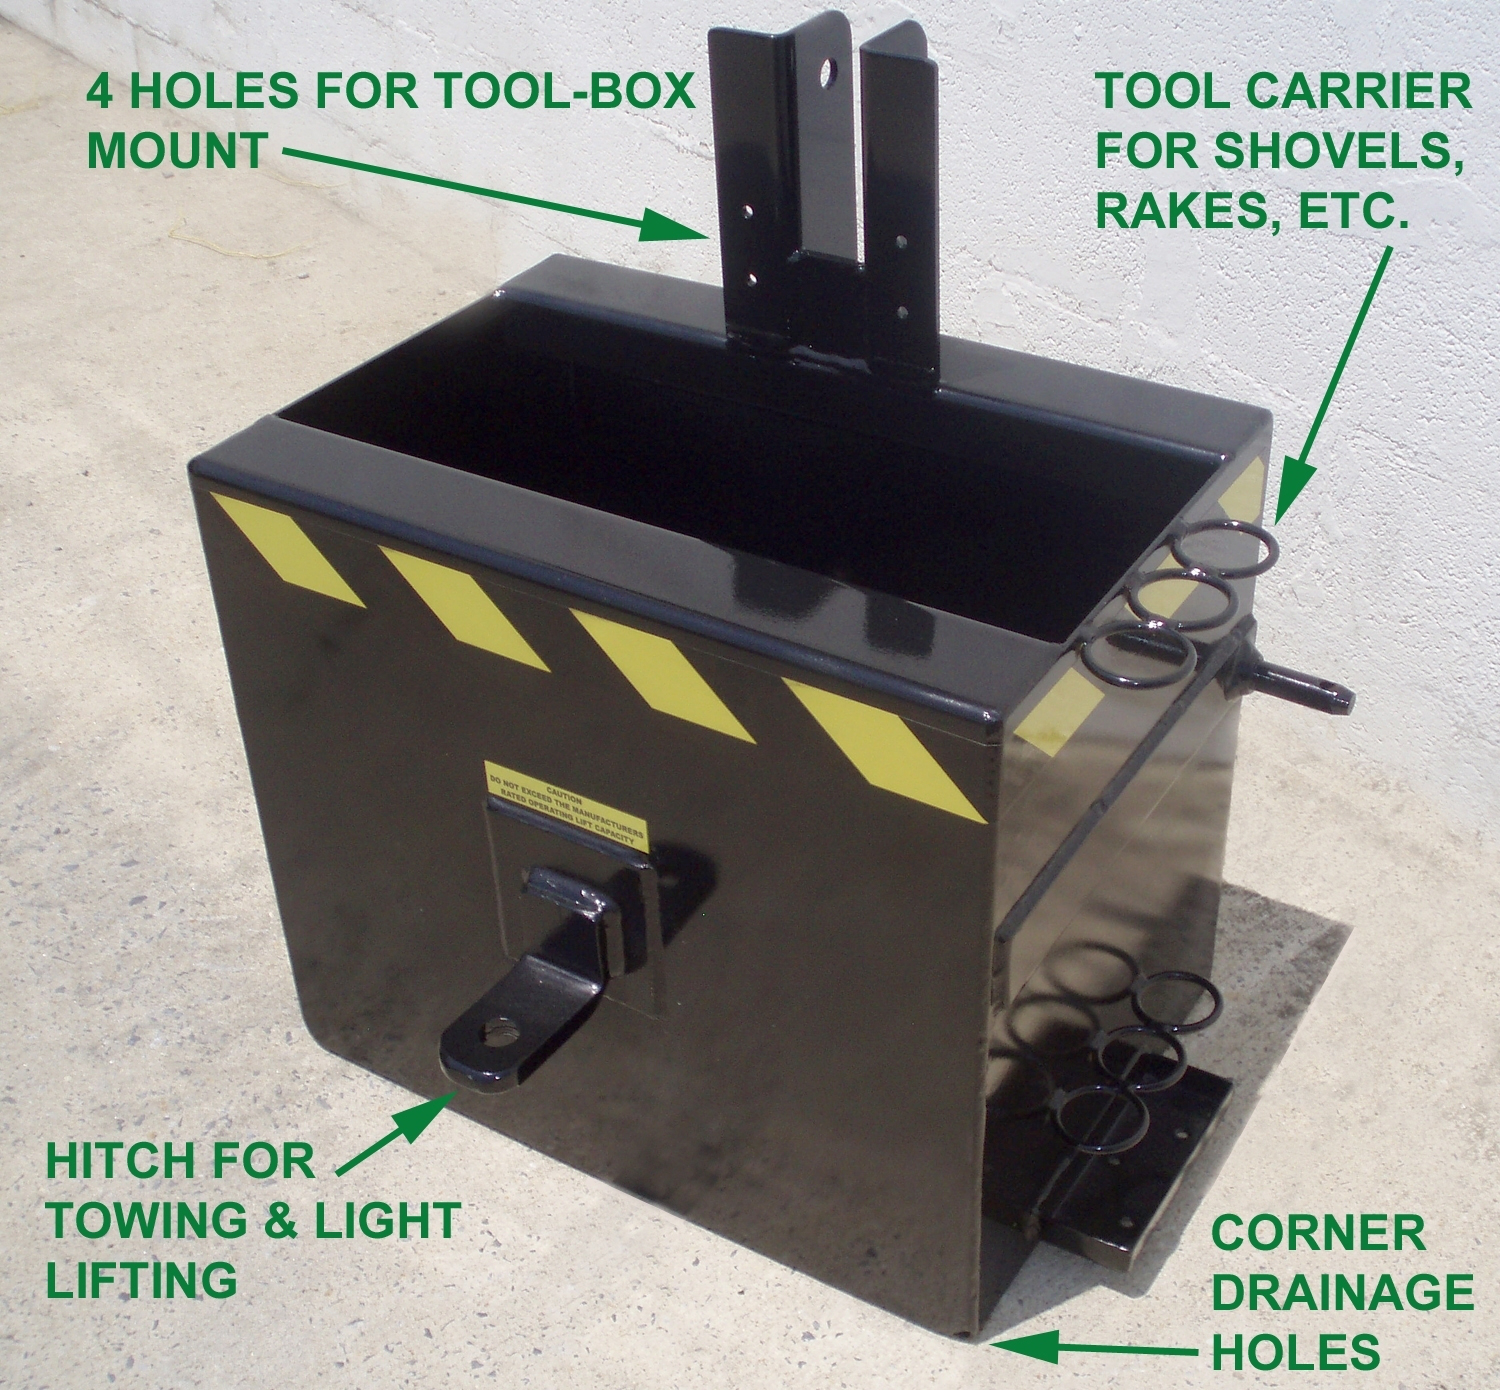 Tractor Ballast Box : Earth turf products intros ballast box for compact tractors